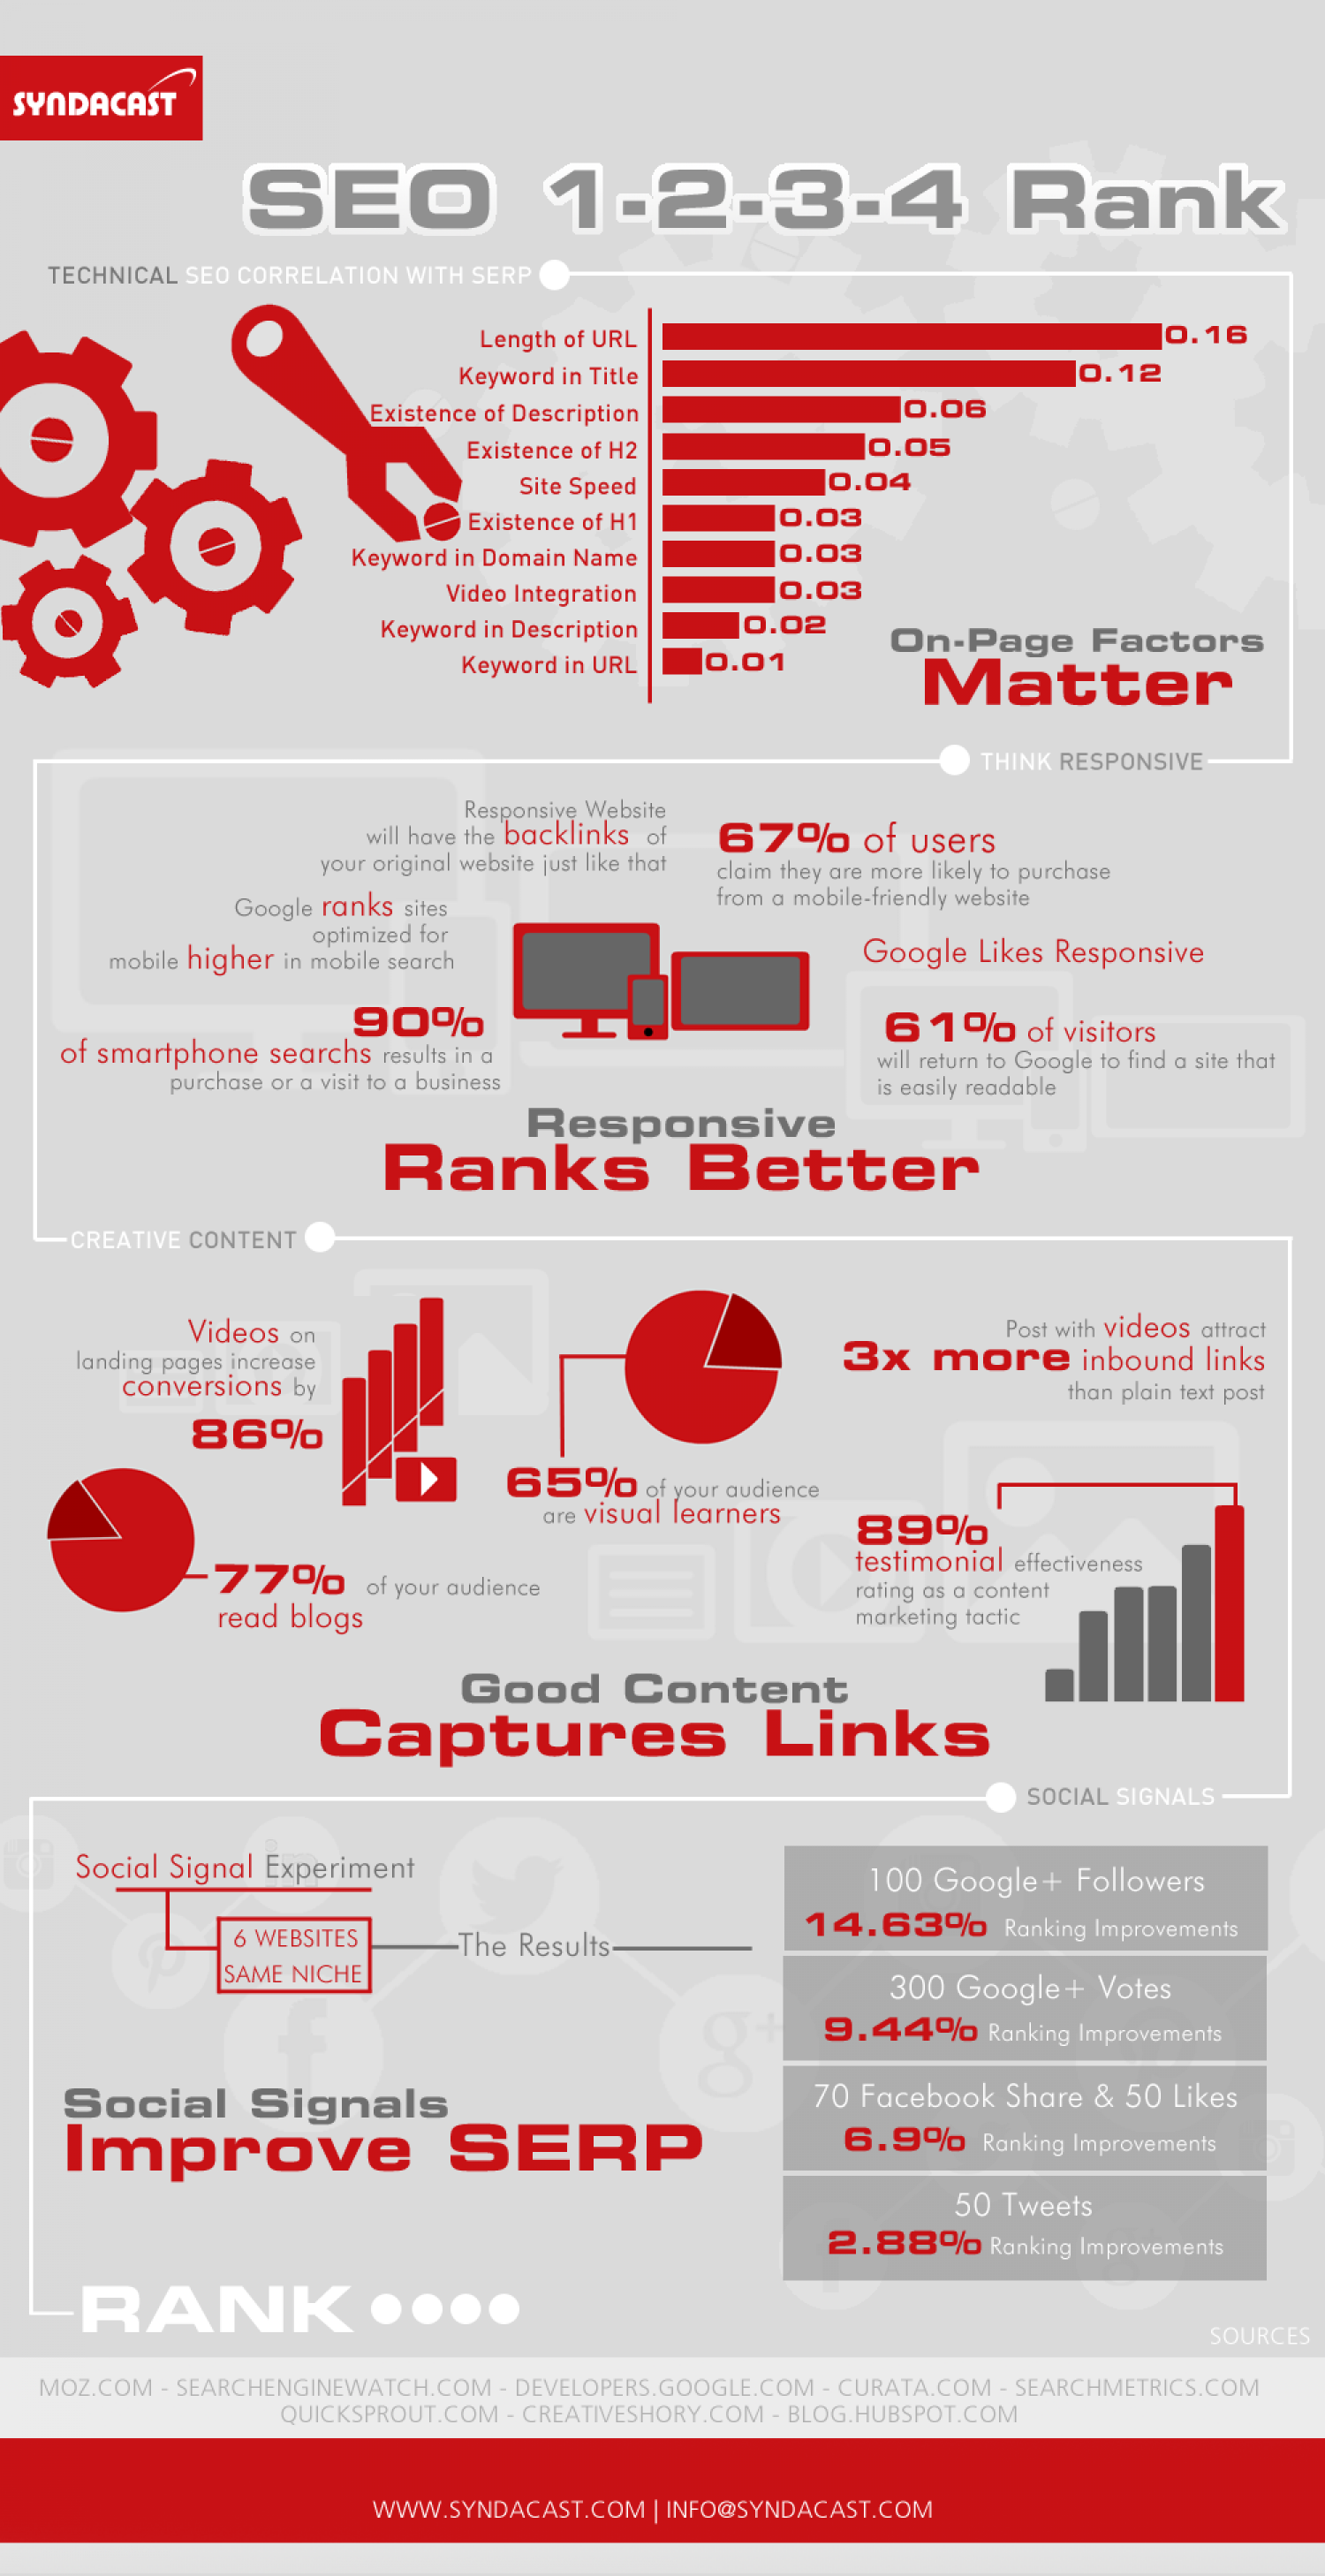 SEO 1-2-3-4 Rank! Infographic